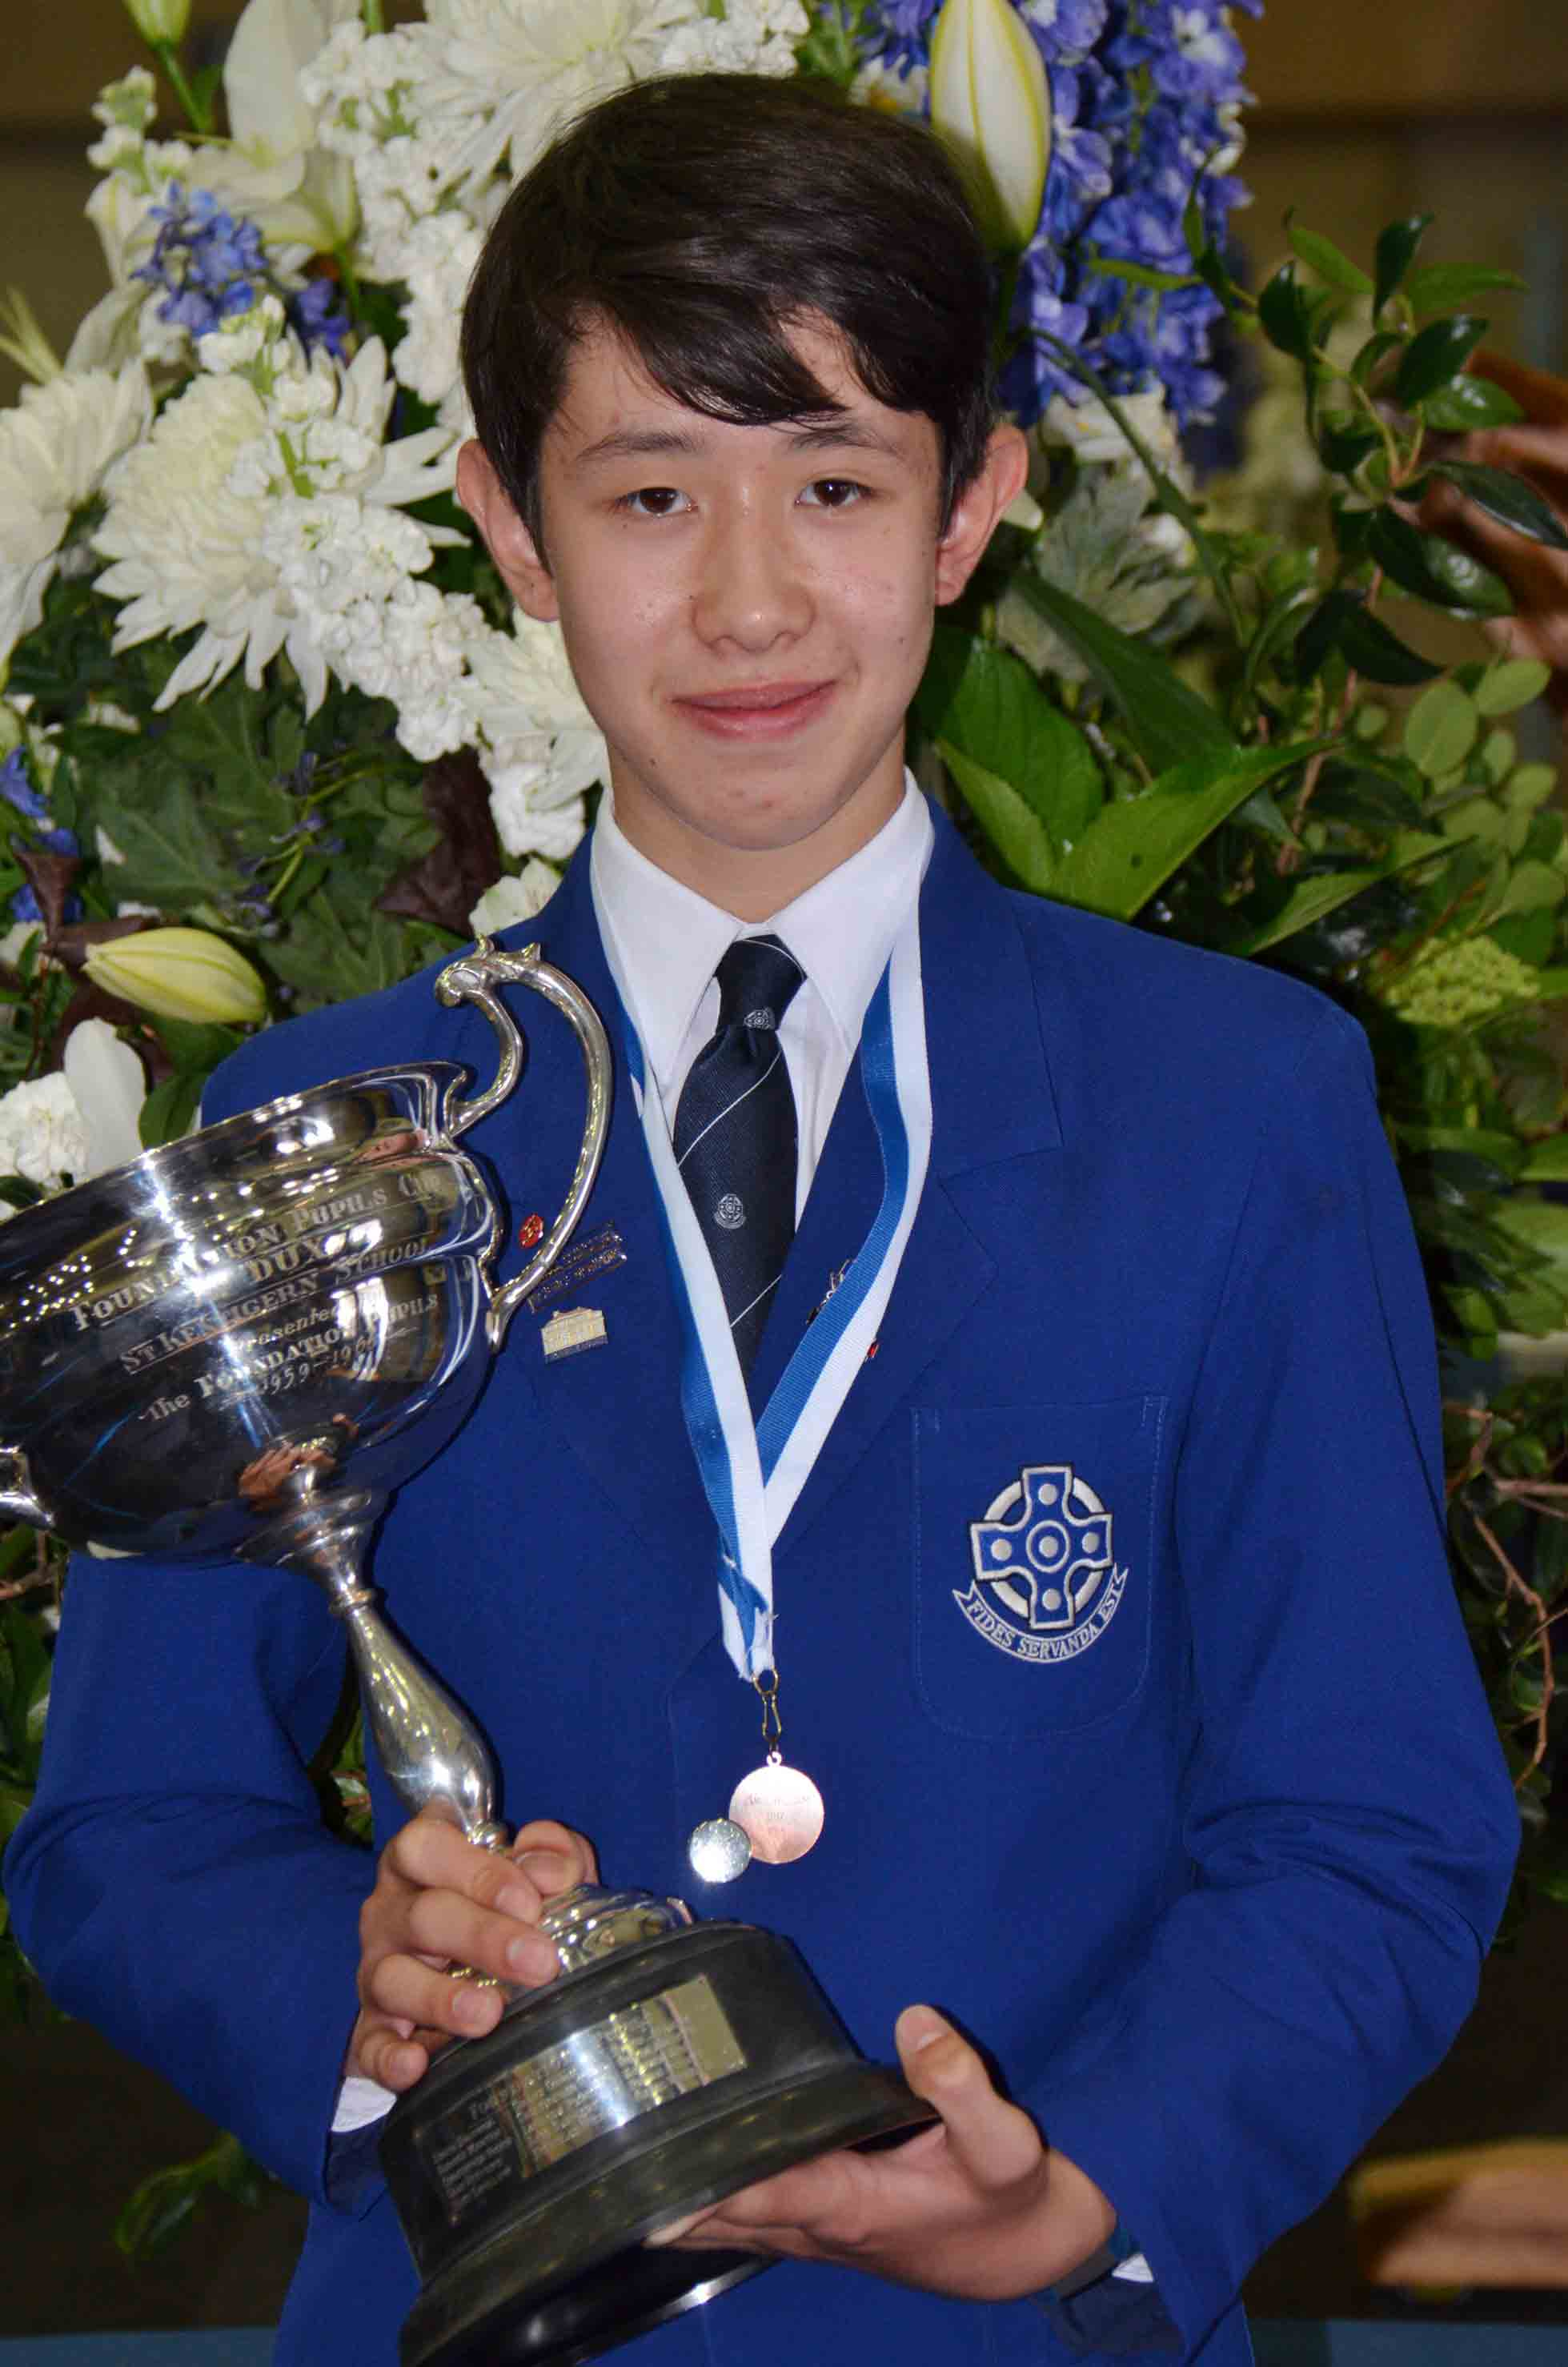 1 Saint-Kentigern-Boys'-School-Prizegiving-2018.jpg